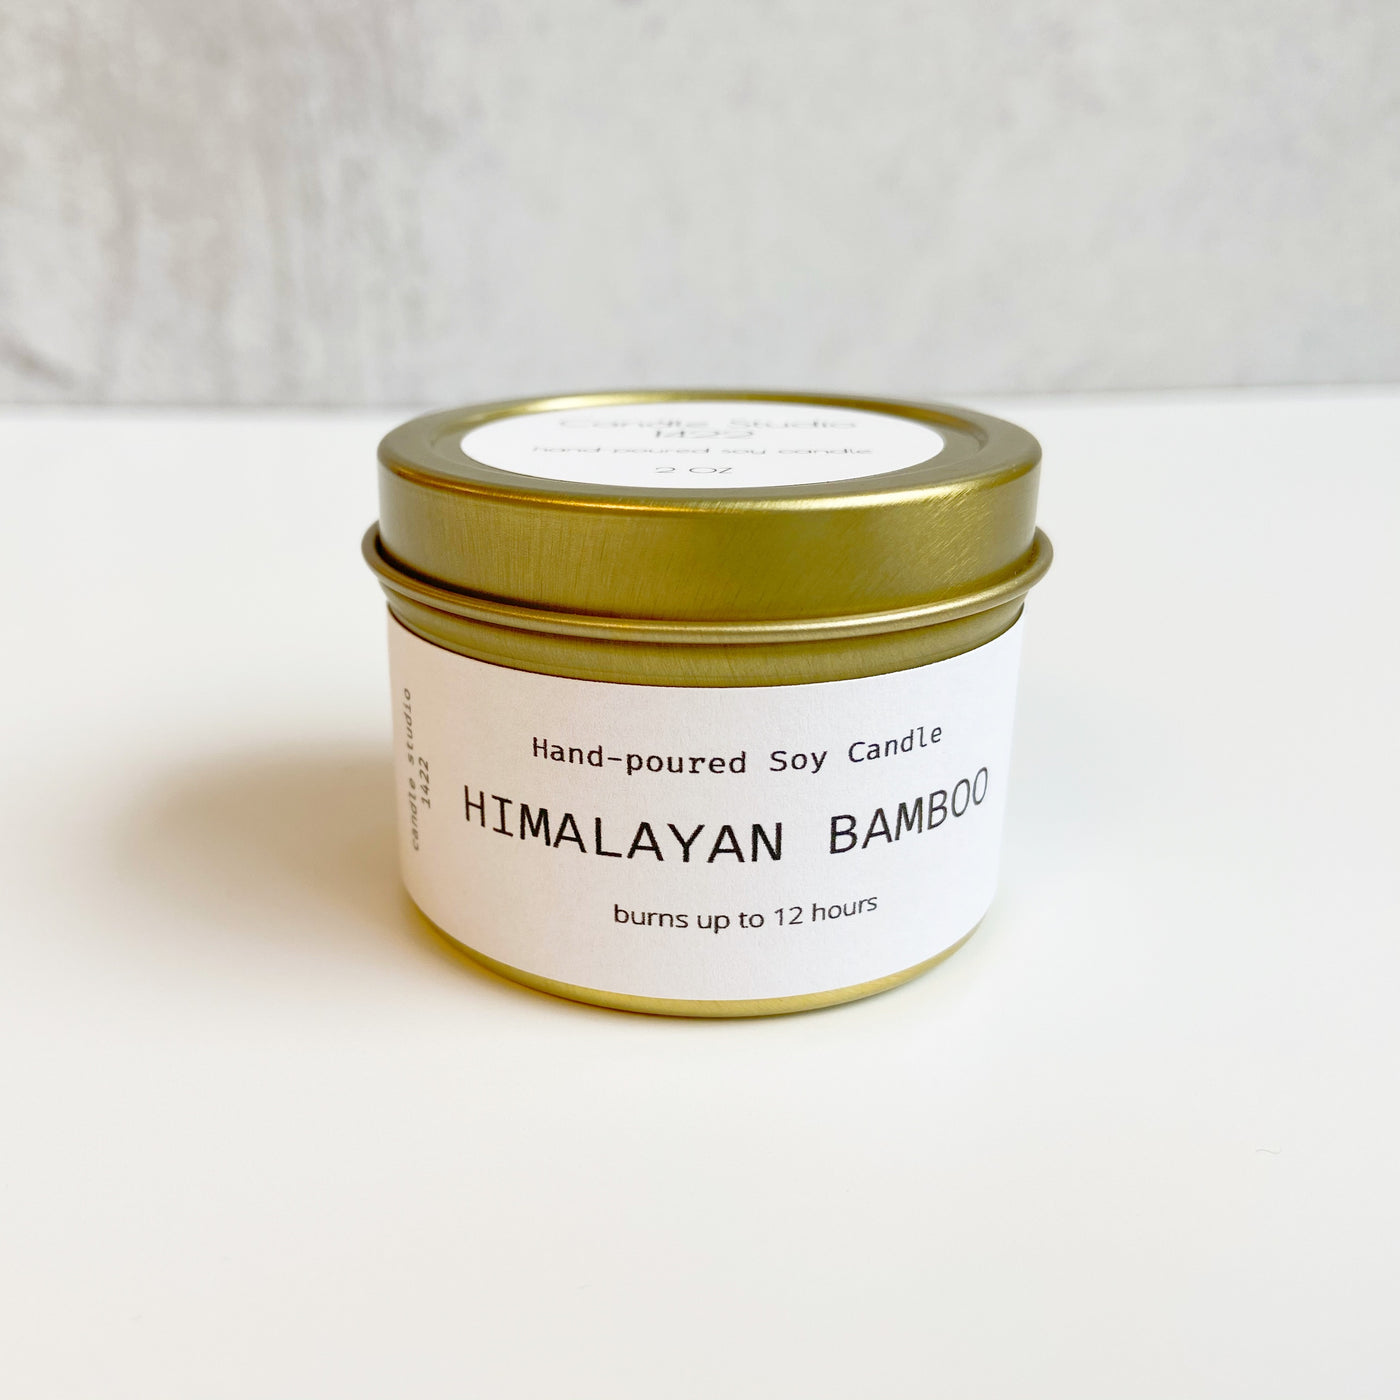 HIMALAYAN BAMBOO 2 oz Travel Tin Soy Candle